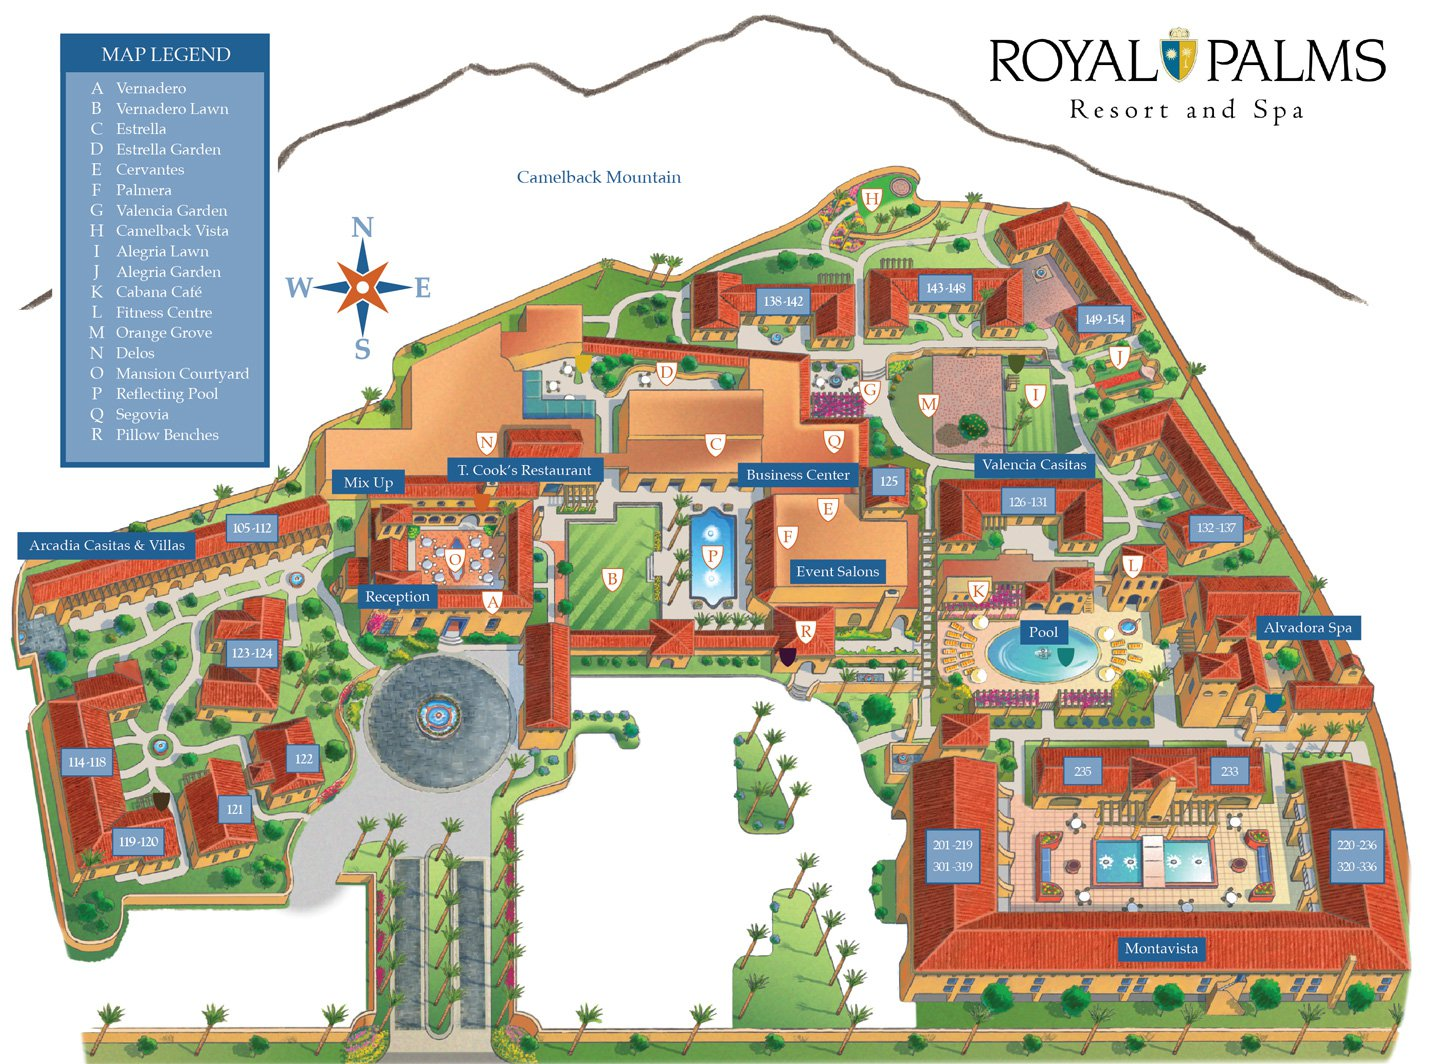 180409-Royal-Palms-Resort-Map.jpg